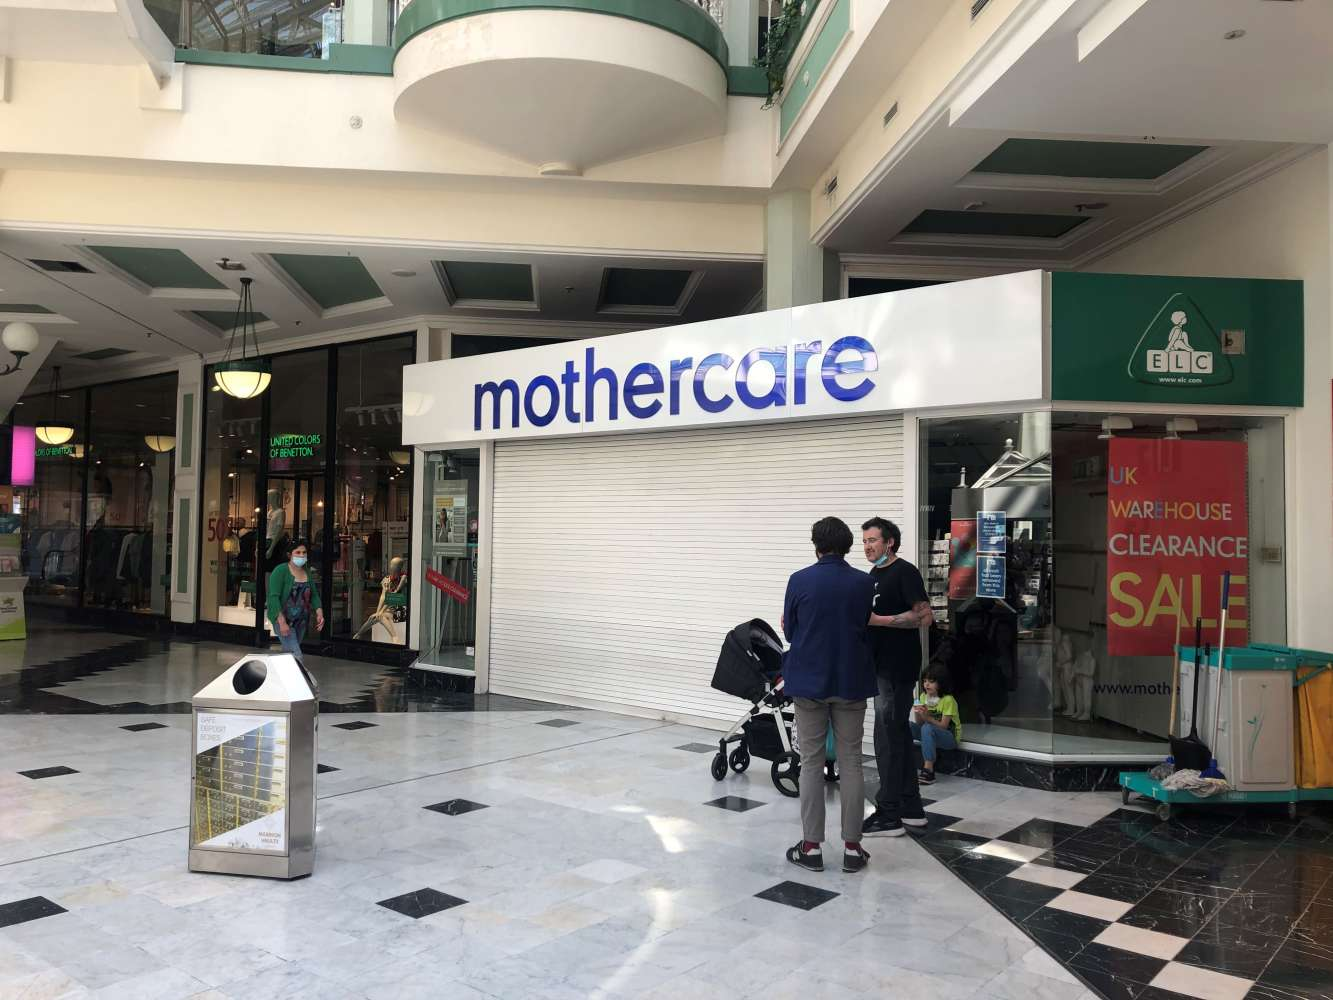 Retail Dublin 2, D02 HP22 - Unit 001B, Stephen's Green Shopping Centre